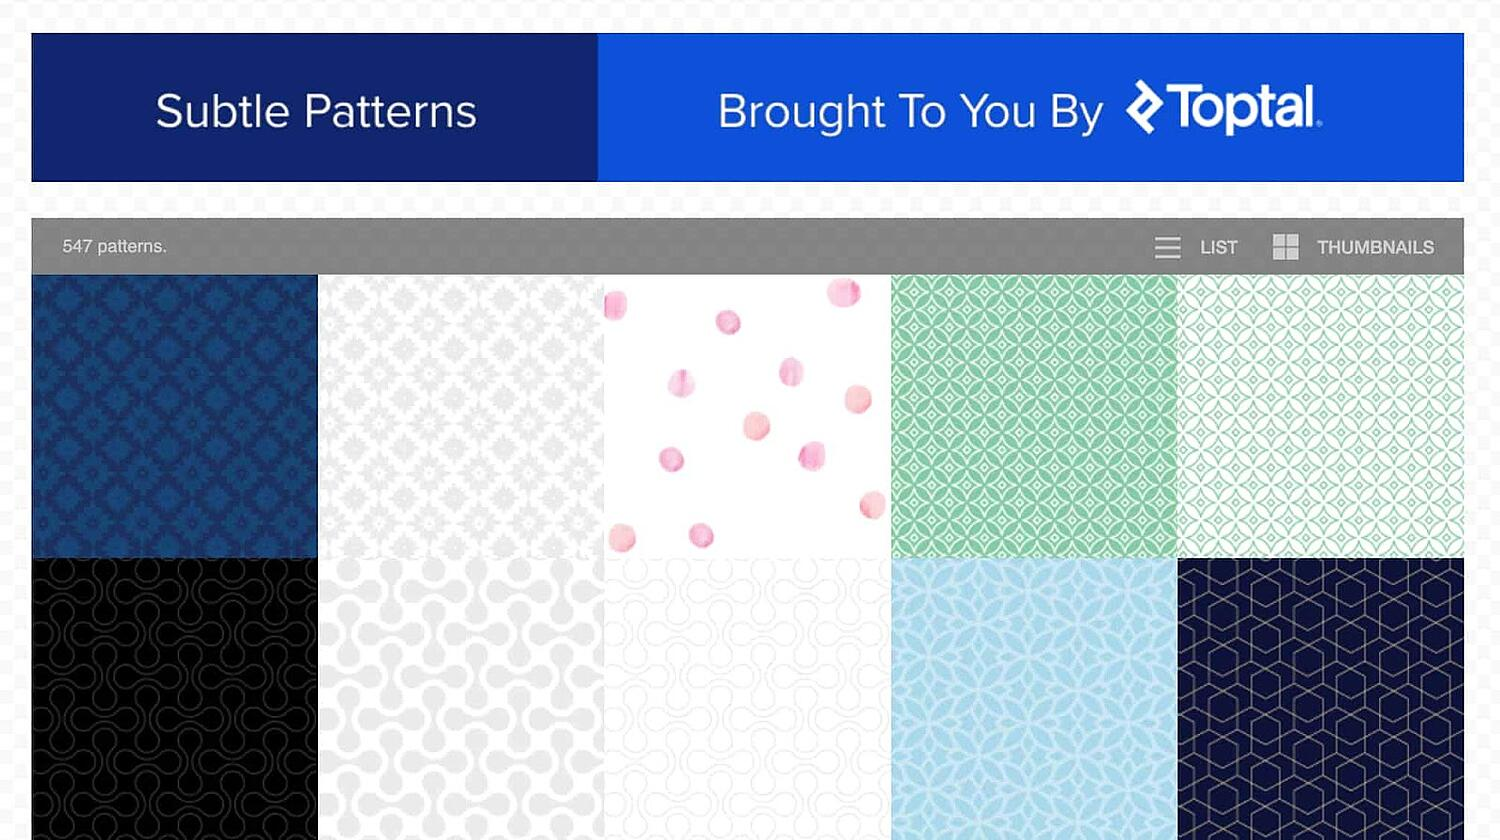 homepage for the web textures resource Subtle Patterns